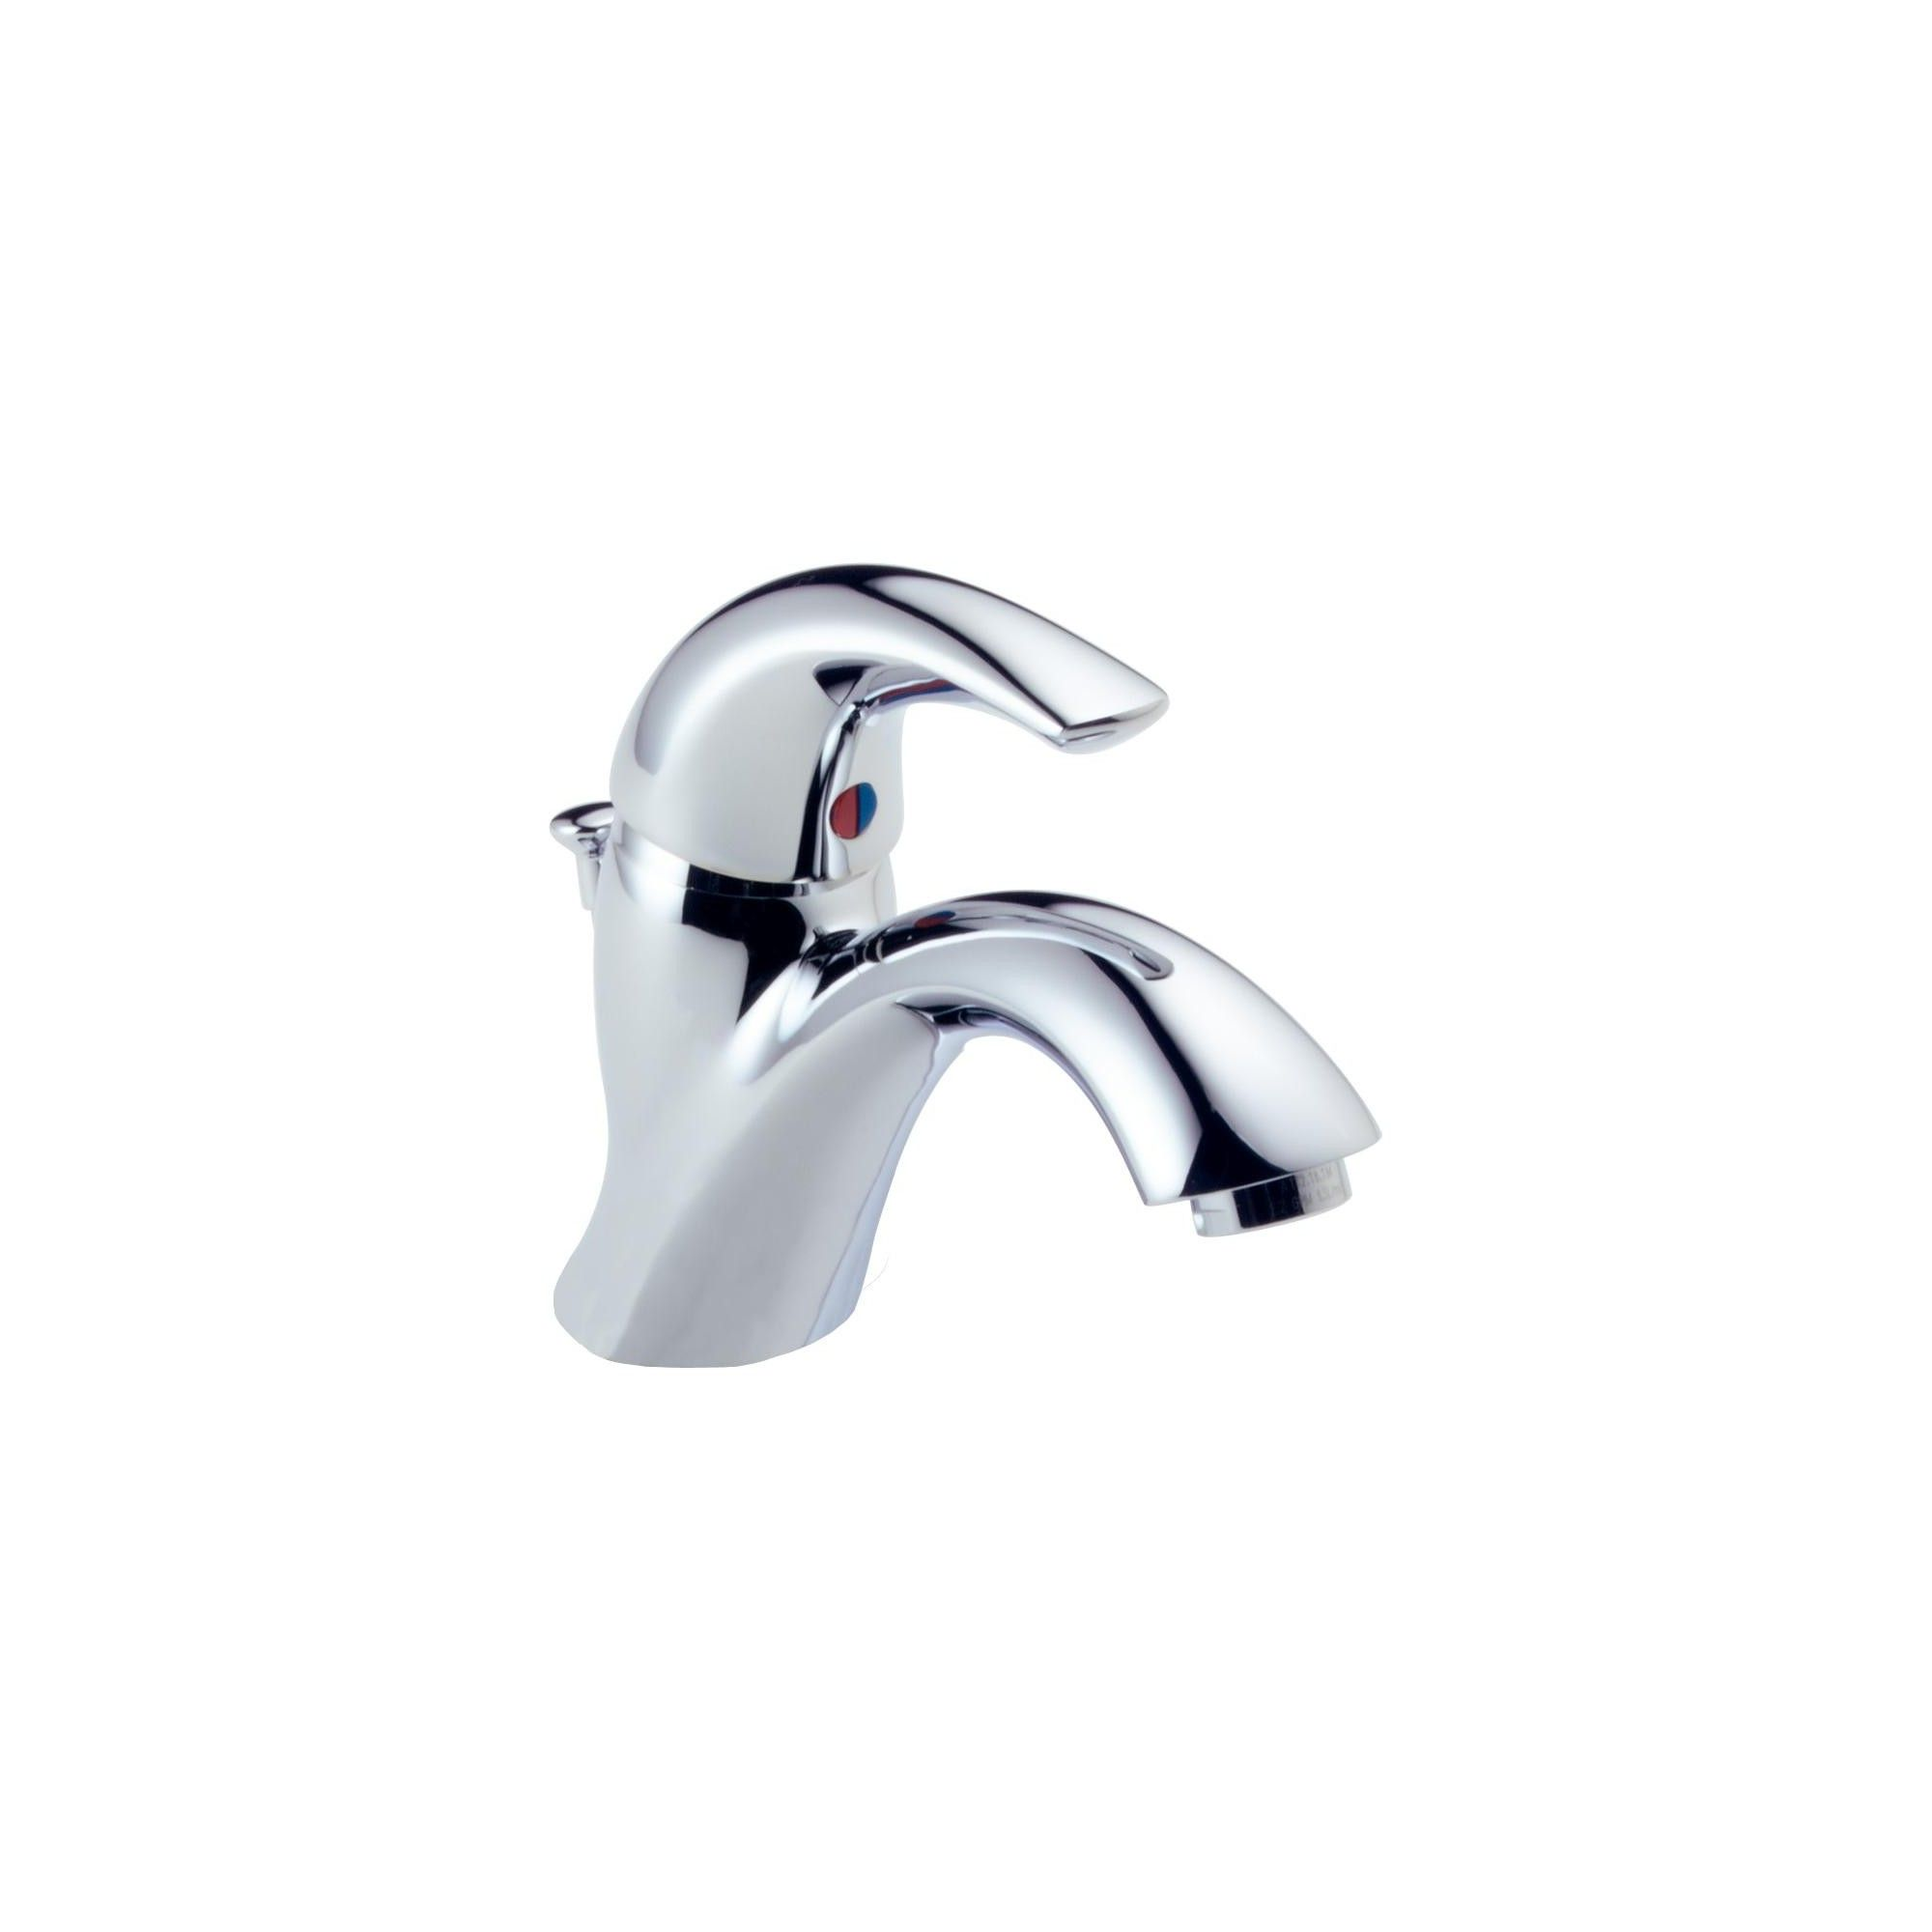 Delta Faucet 583lf Wf Cspout Single Hole Bathroom Faucet